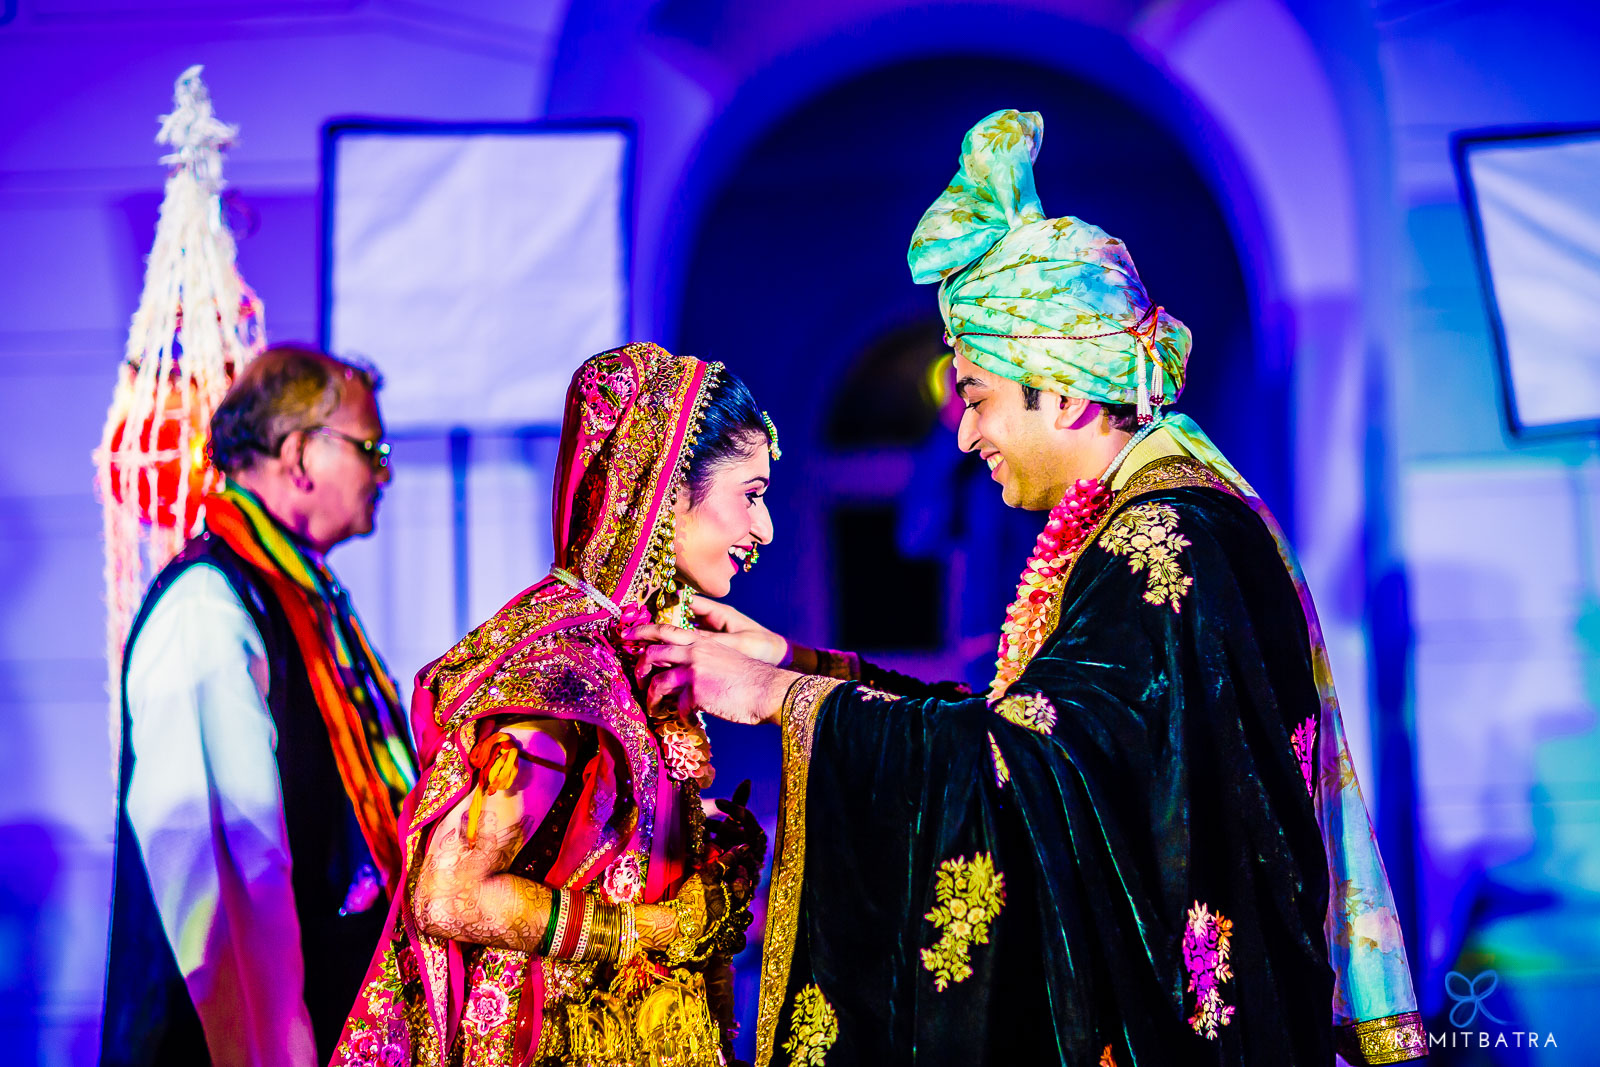 Wedding-Photographer-Hyderabad-India-RamitBatra_53